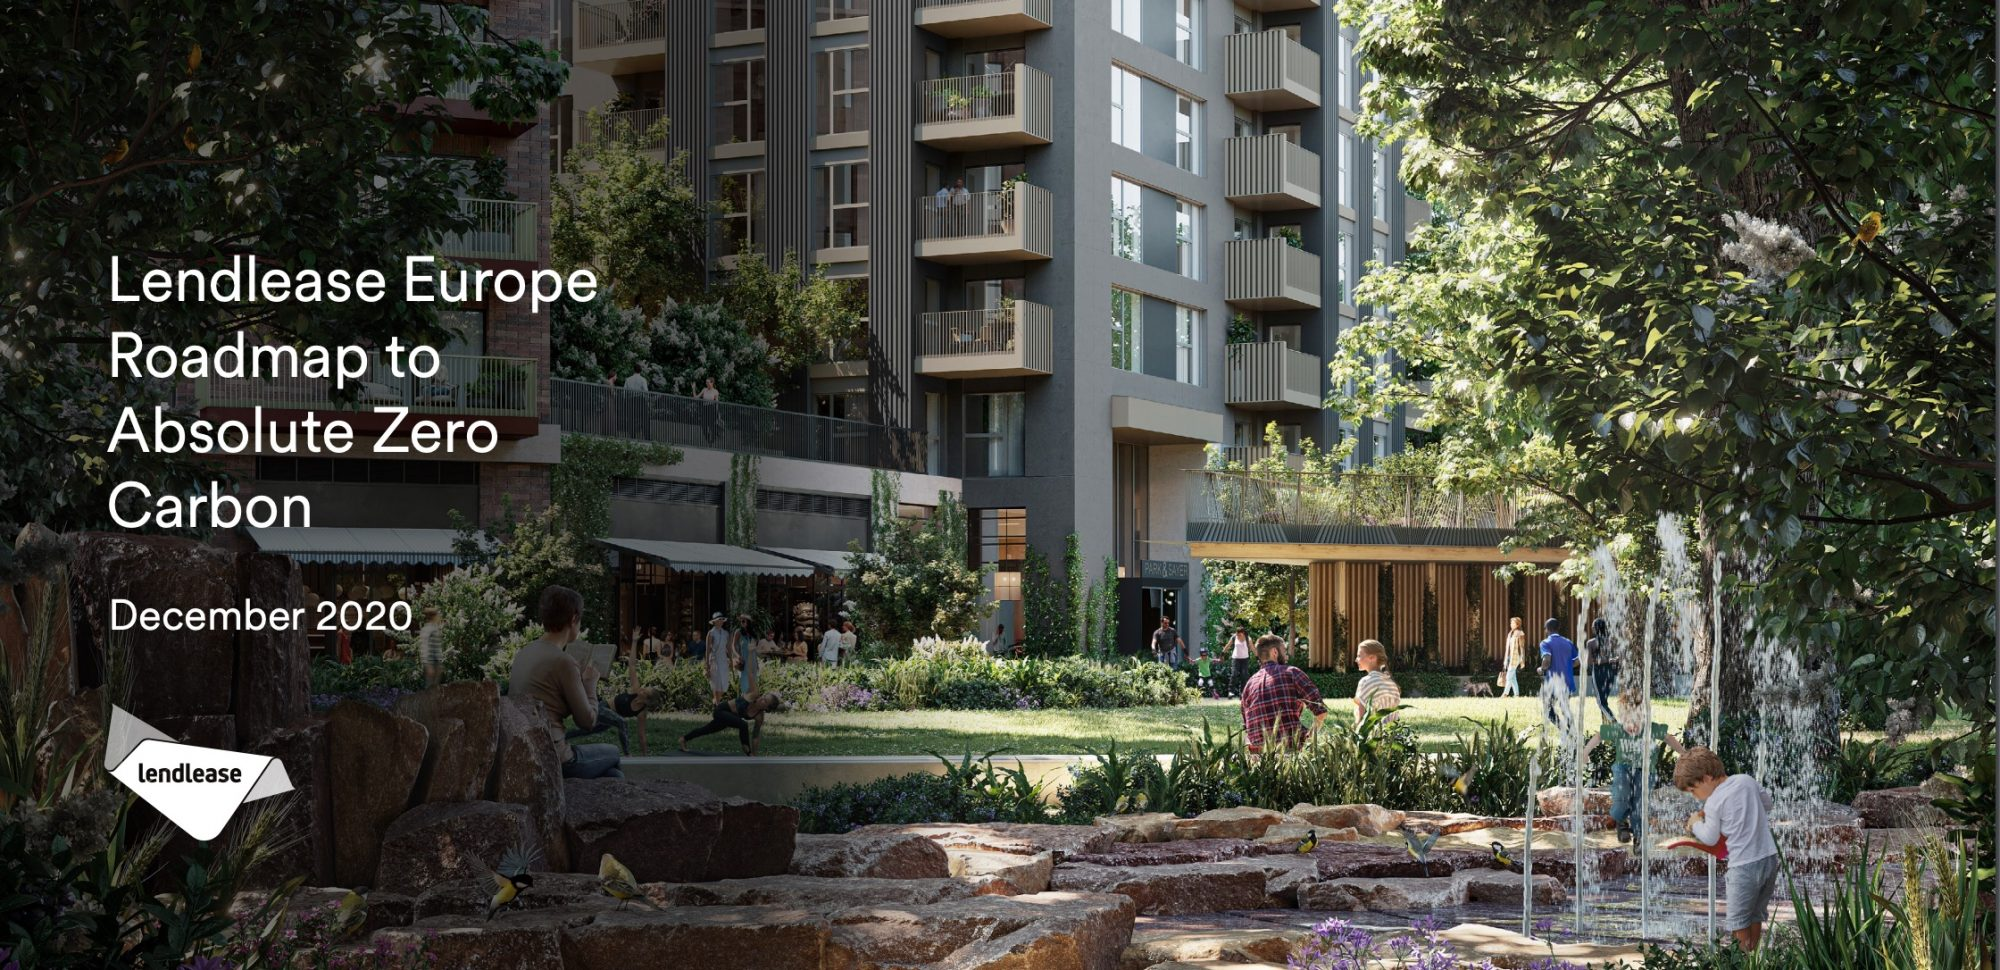 Lendlease lays out roadmap to 'Absolute Zero Carbon'